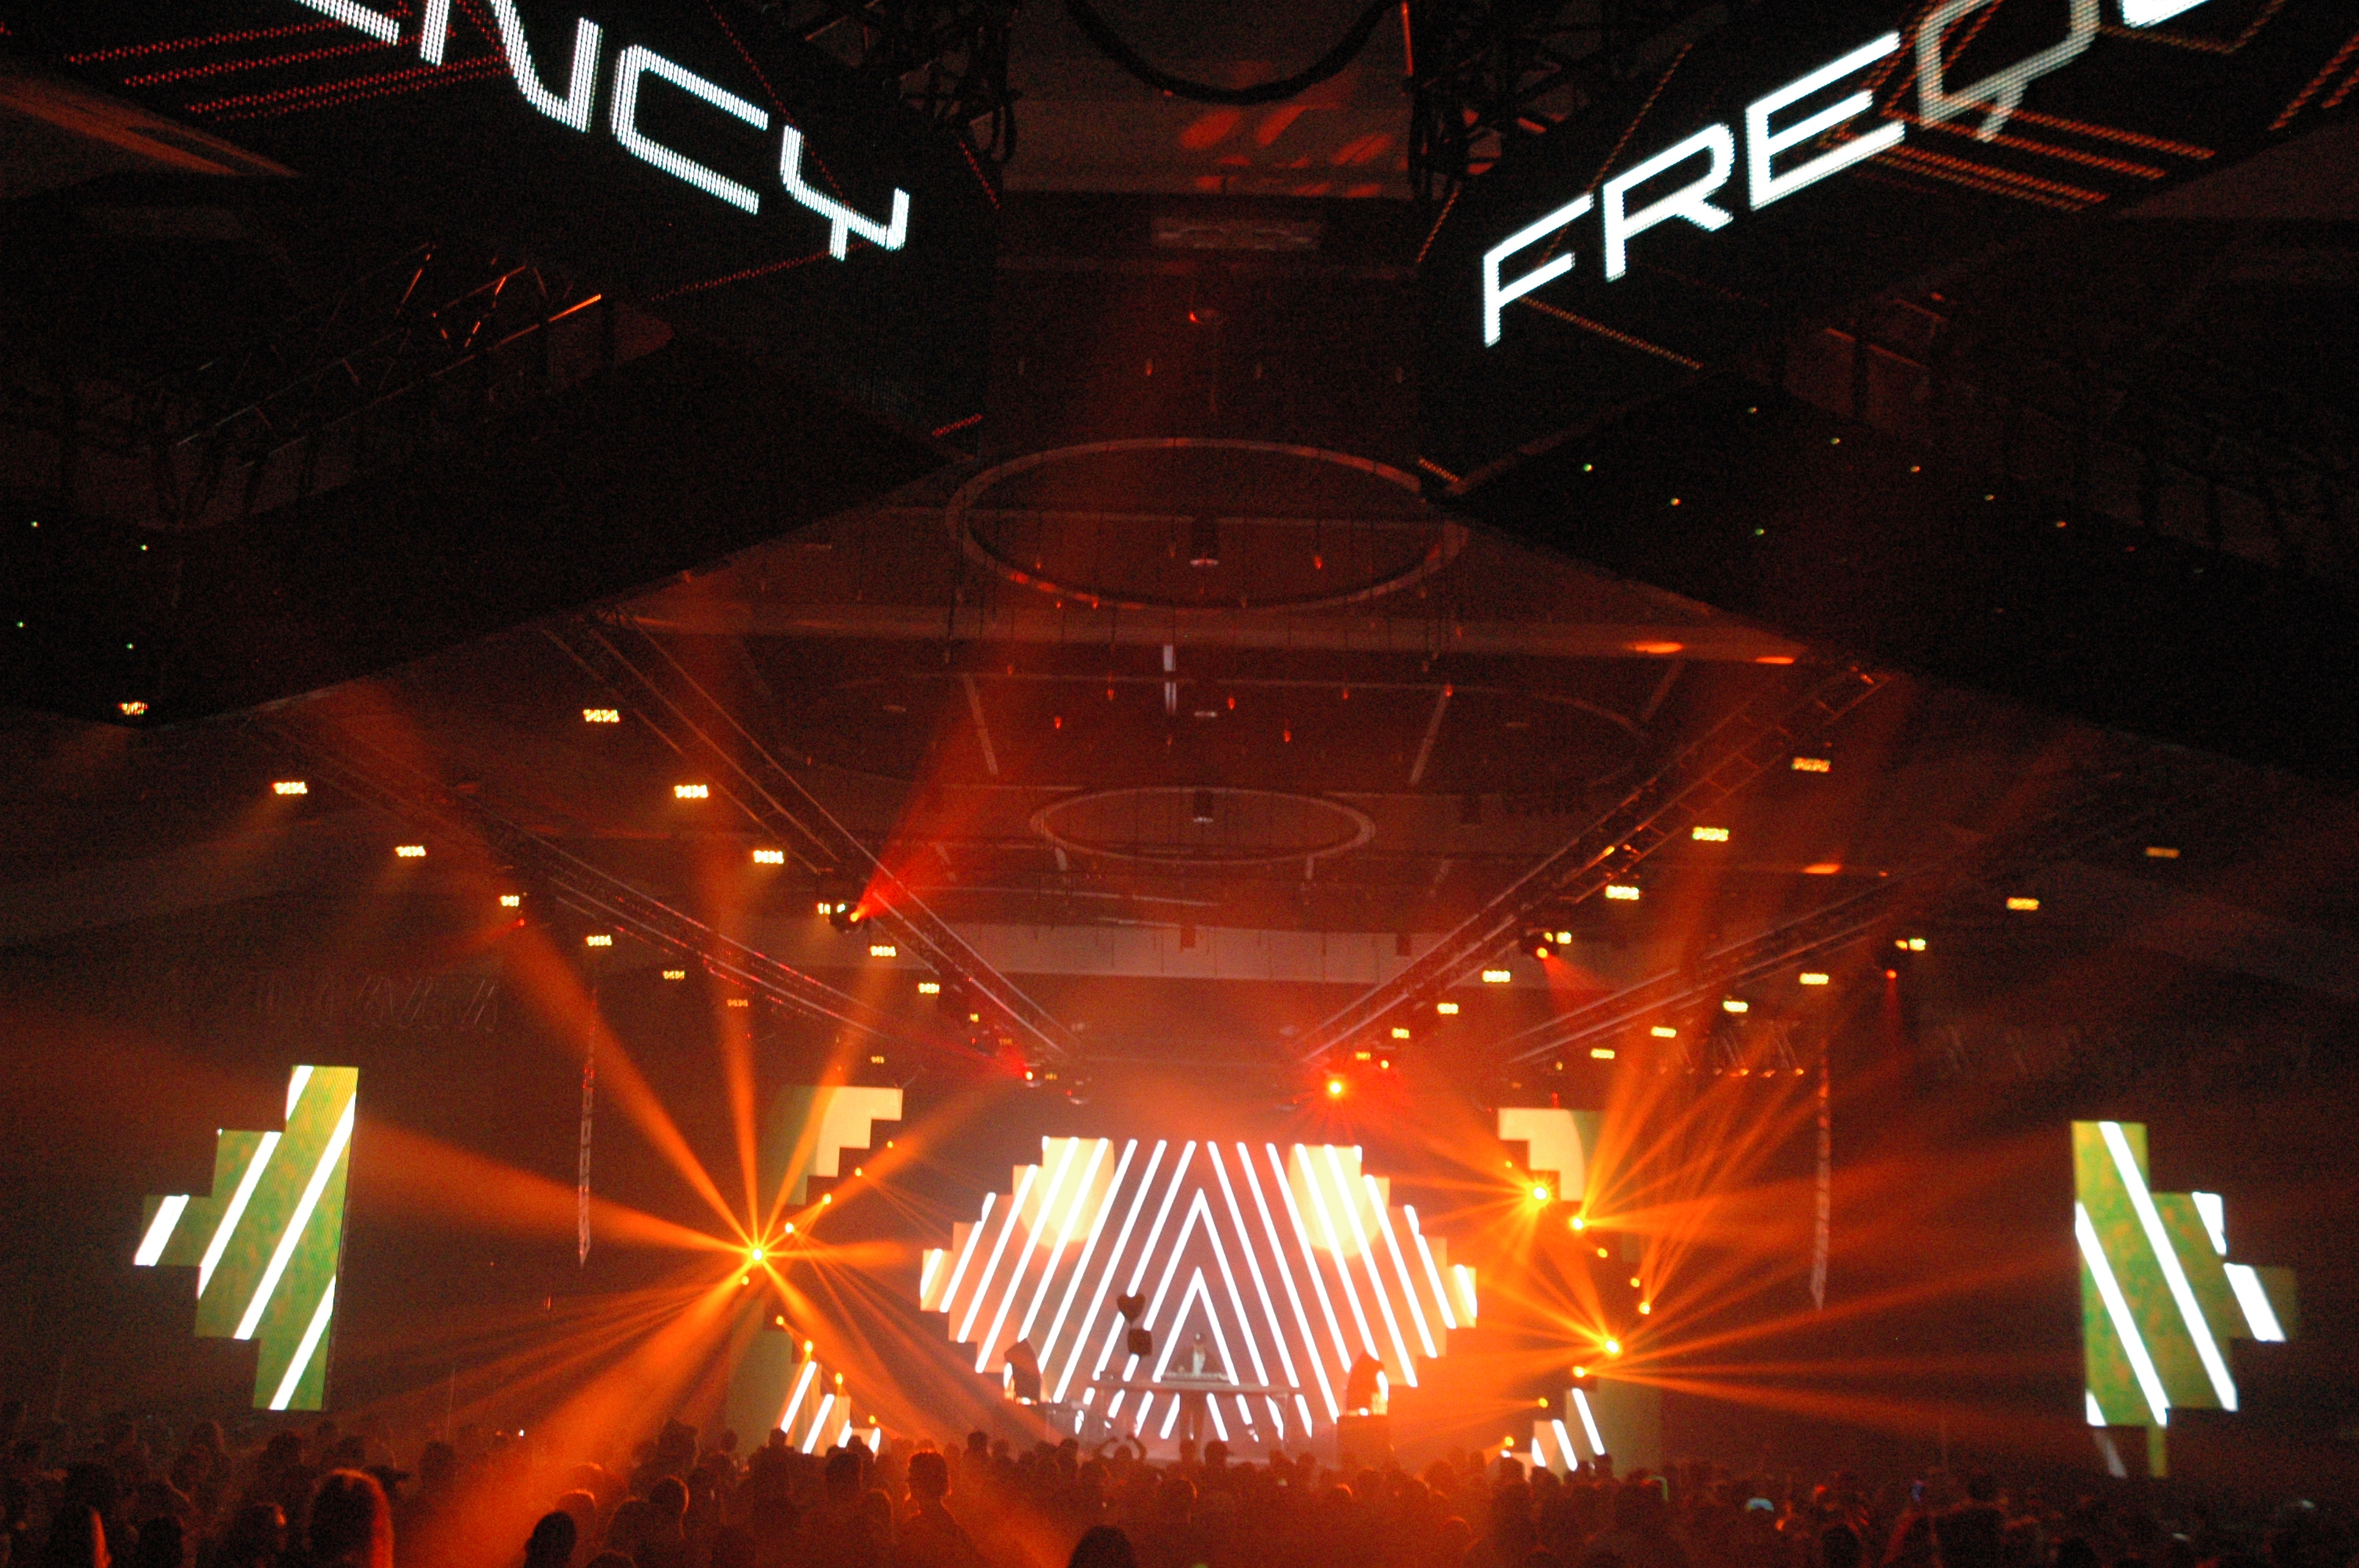 LED screens @ Frequency